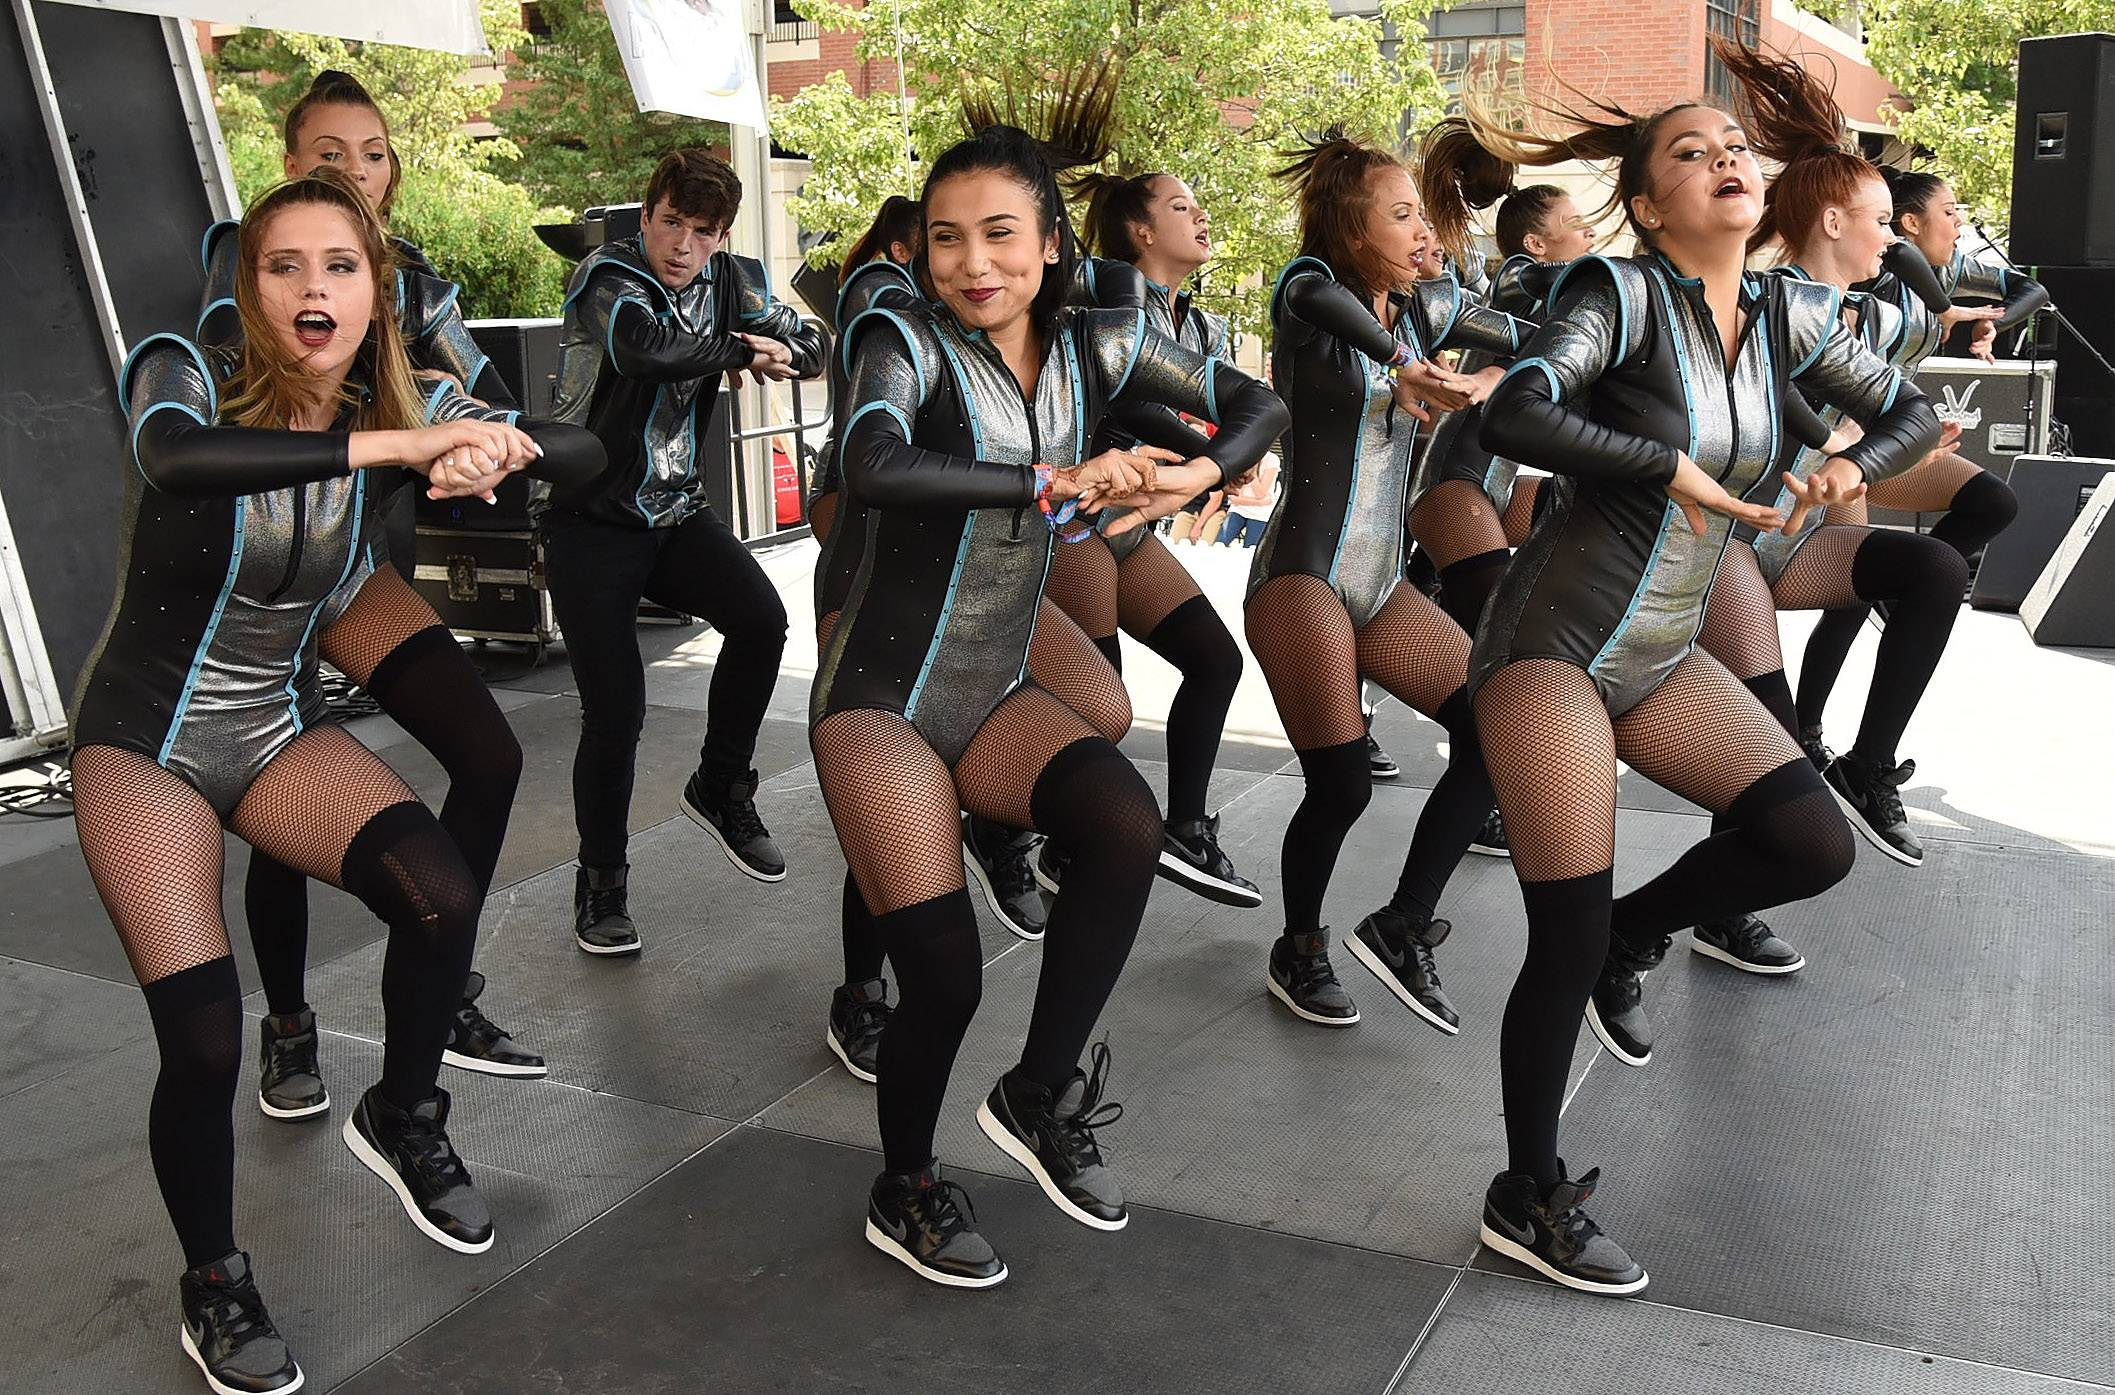 The Dynasty, a Naperville-based hip-hop dance troupe, performed to a mashup of Lady Gaga hits at the 2017 Suburban Chicago's Got Talent finale on Saturday at the Taste of Arlington Heights.